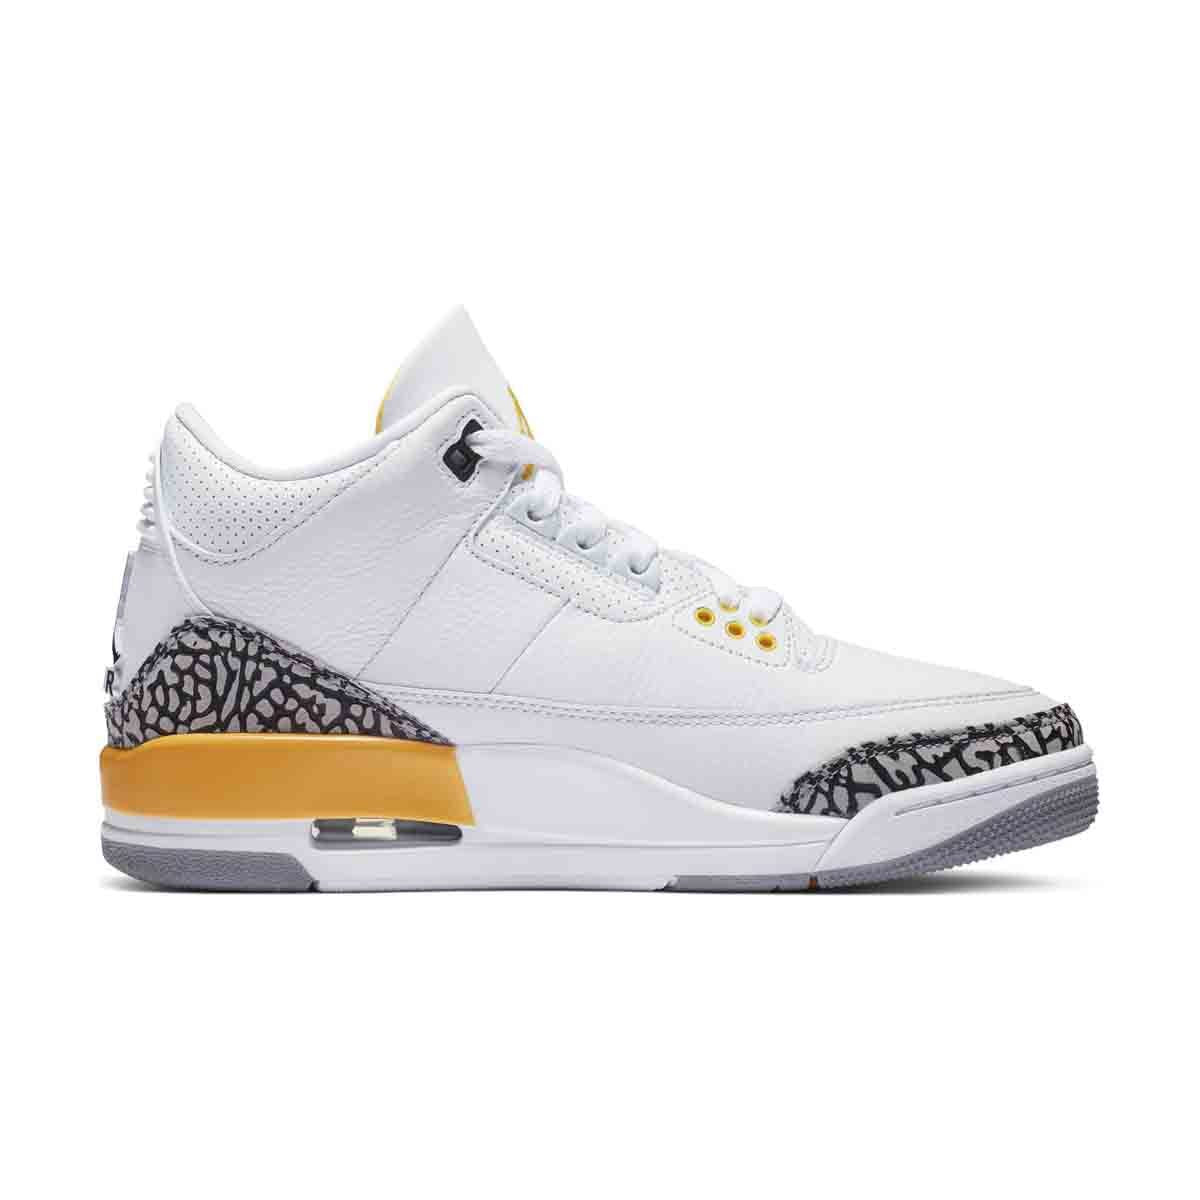 Women's Air Jordan 3 Retro